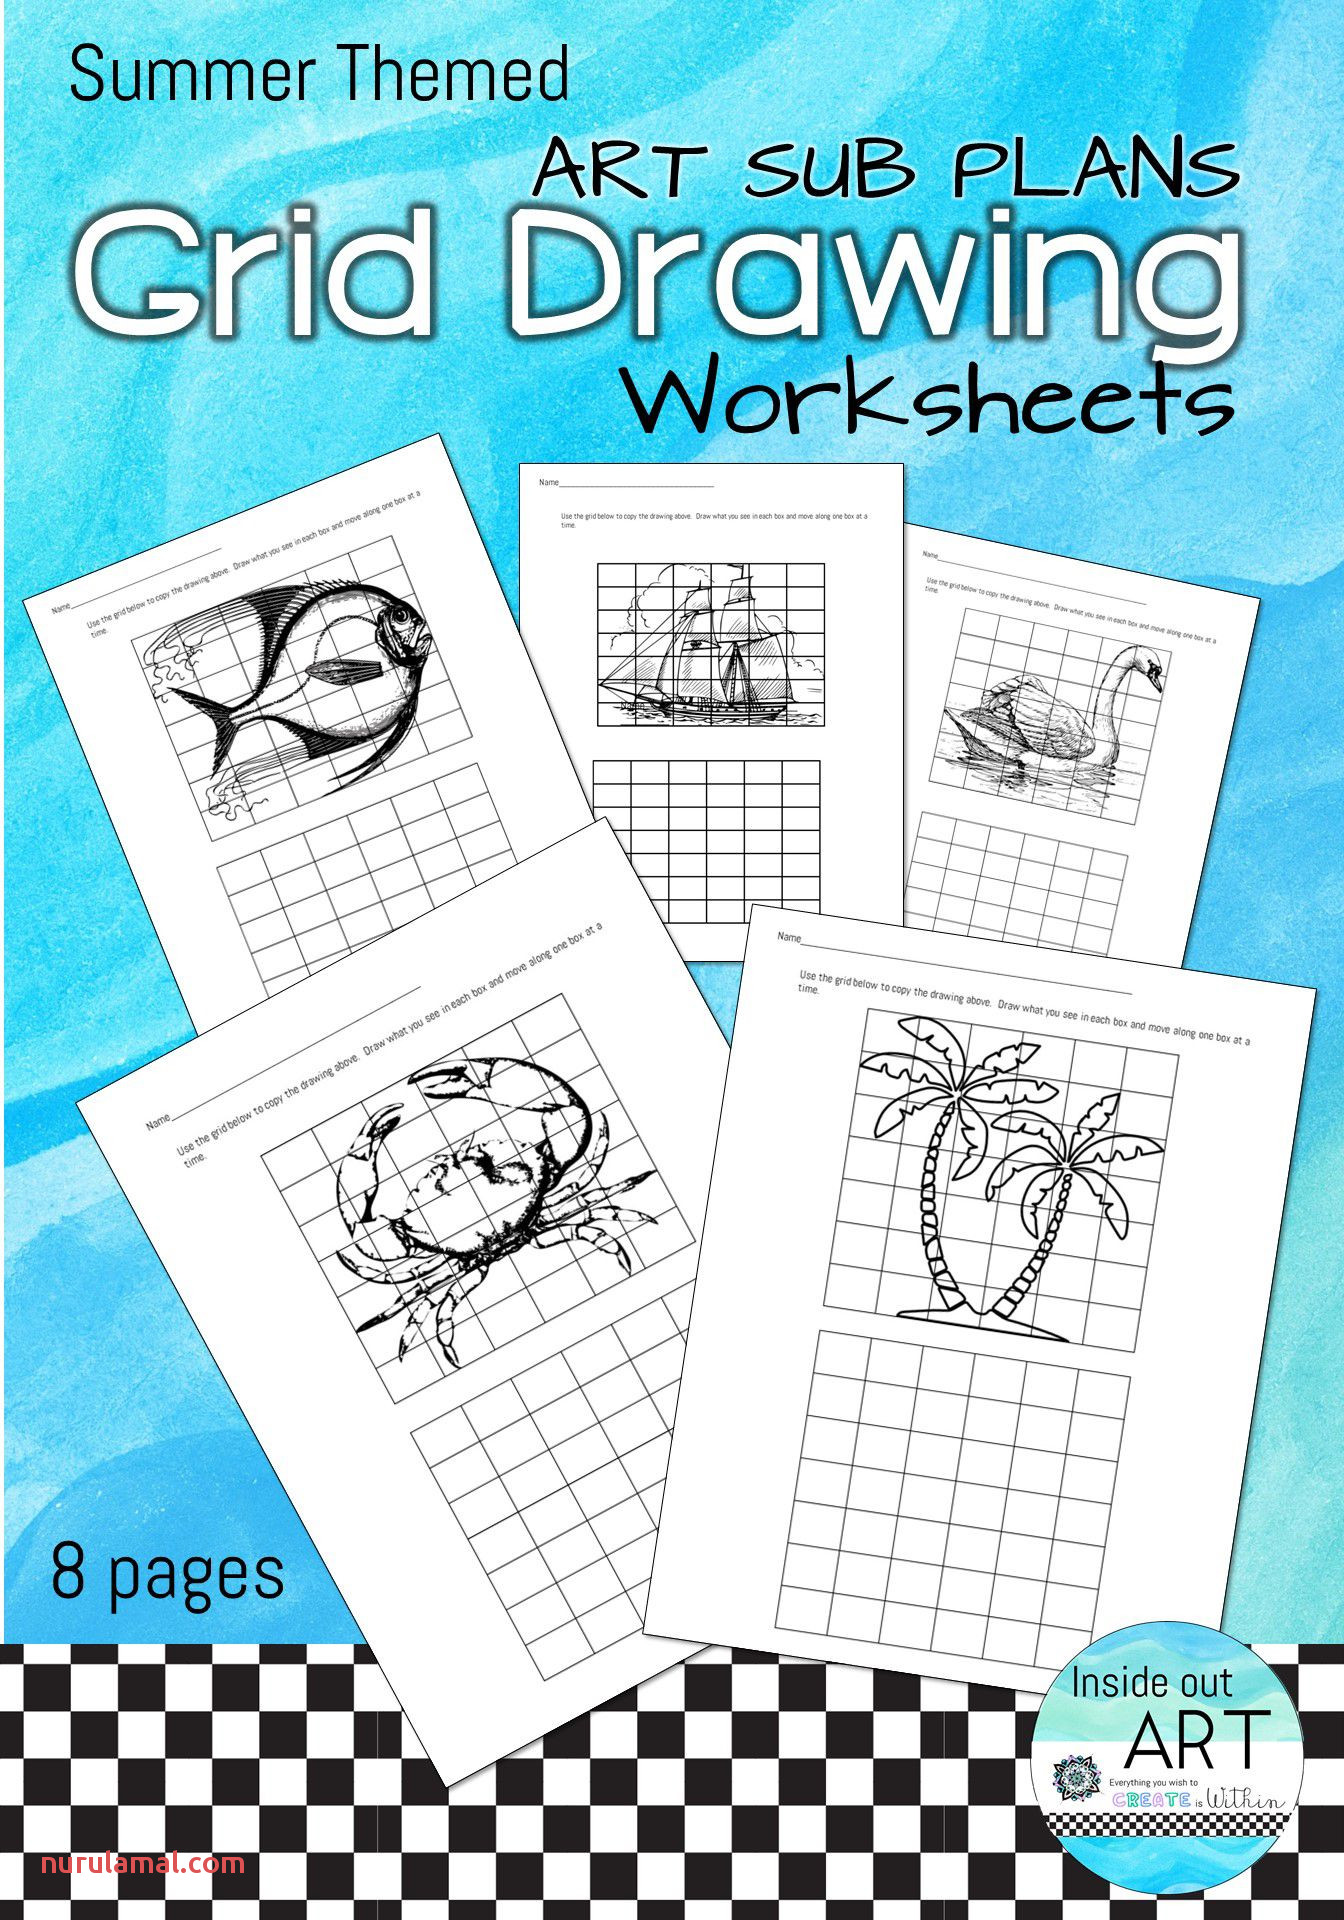 Art Sub Plan Grid Drawing Package 3 Summer theme